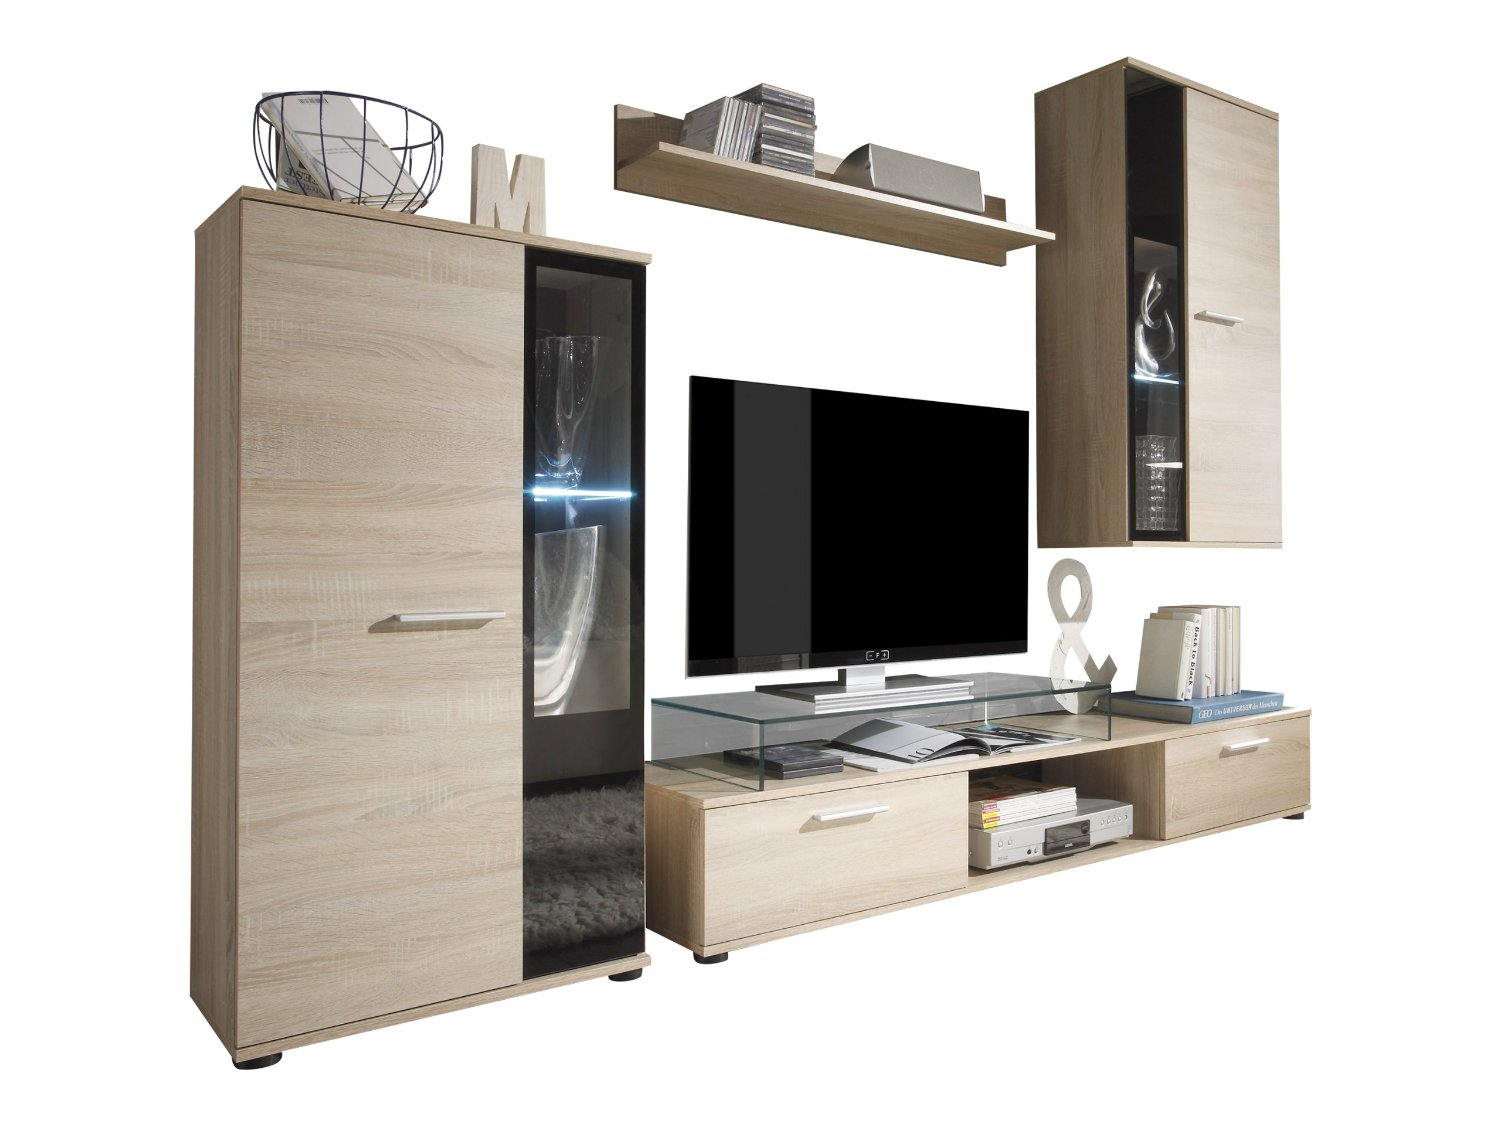 fernseher wand kaufen m bel design idee f r sie. Black Bedroom Furniture Sets. Home Design Ideas